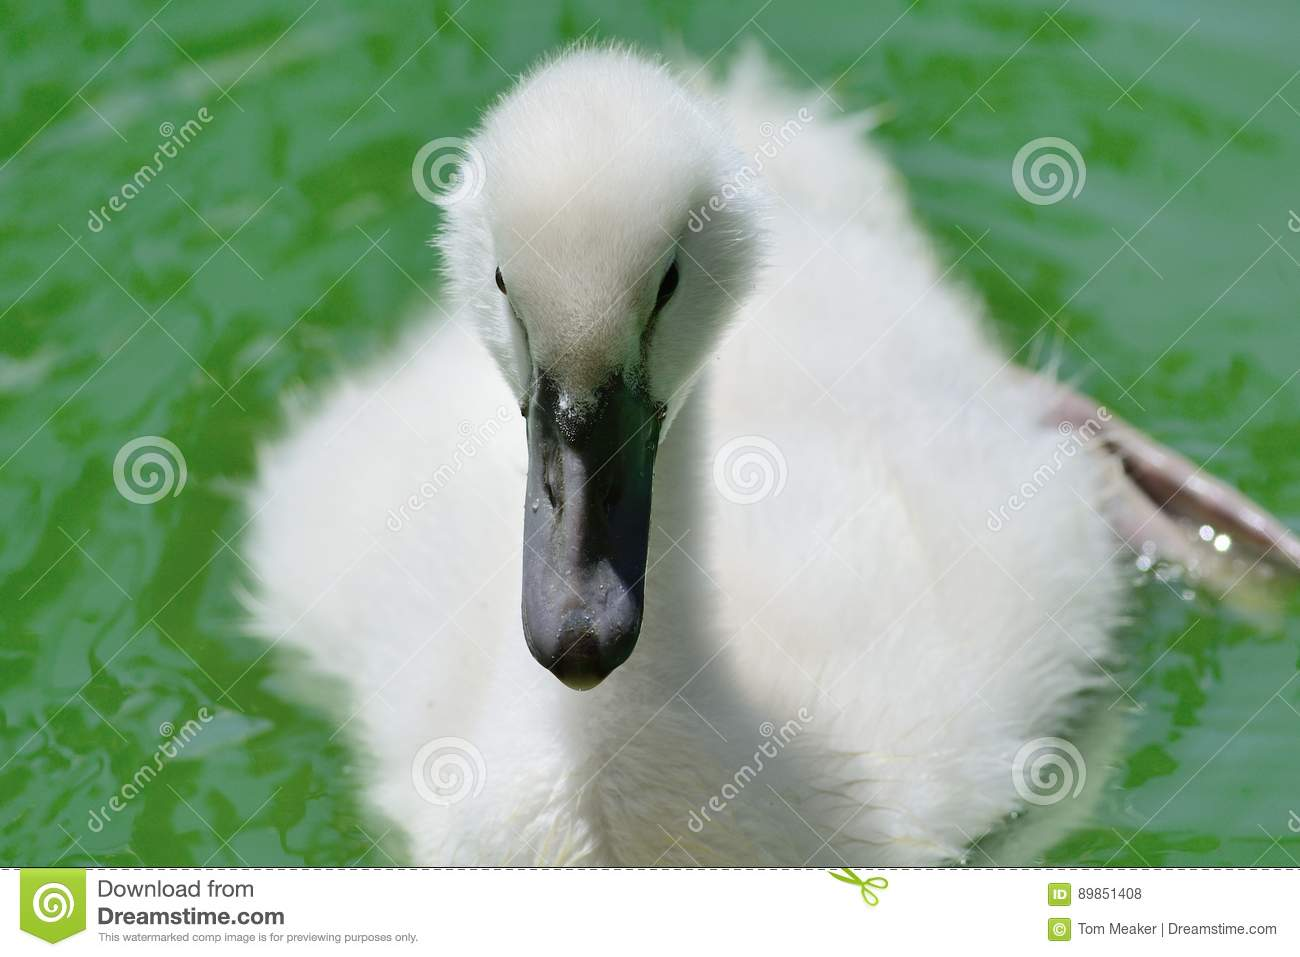 Cygnet in the water